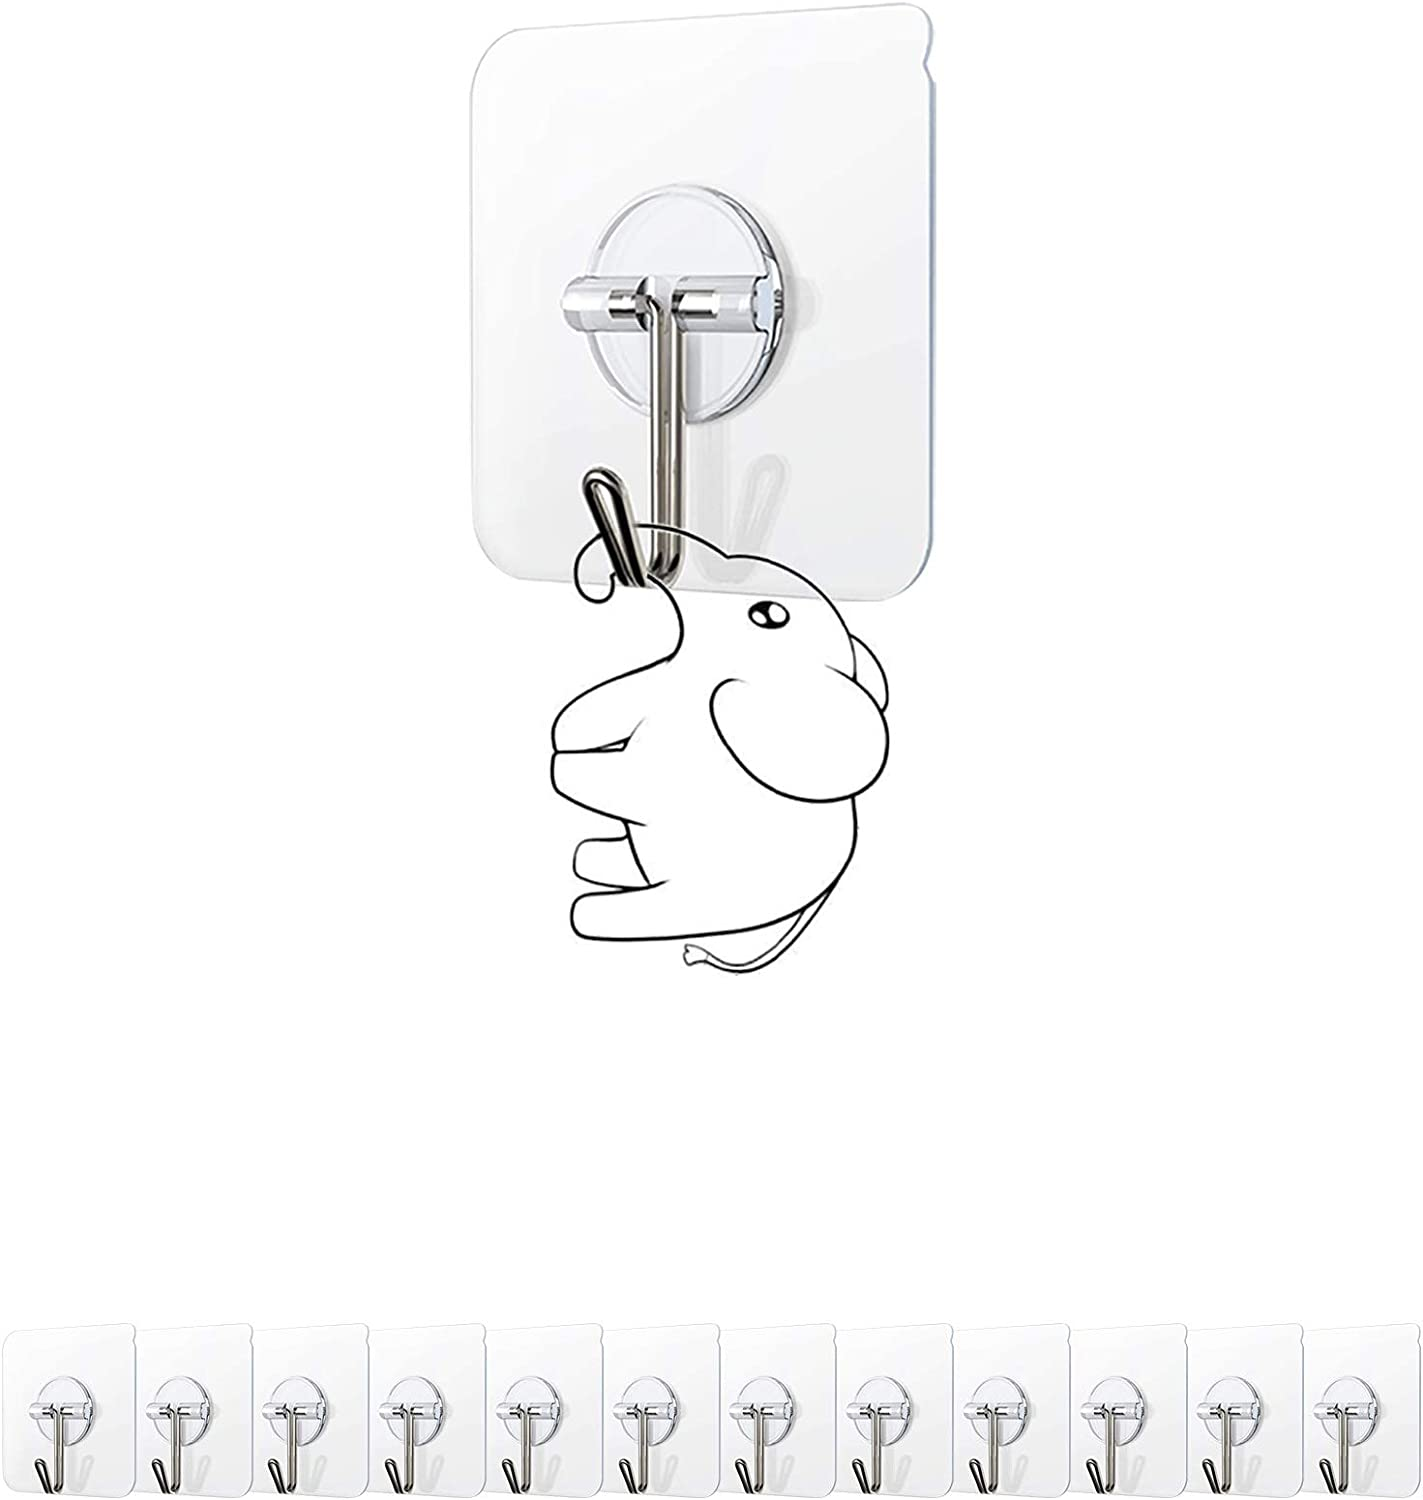 iCAGY Wall Hangers Without Nails, No Damage Wall Hangers, 13lbs (Max) Utility Adhesive Hooks Clear Heavy Duty Waterproof Reusable Seamless 180 Degree Rotating Damage Free - 2.36